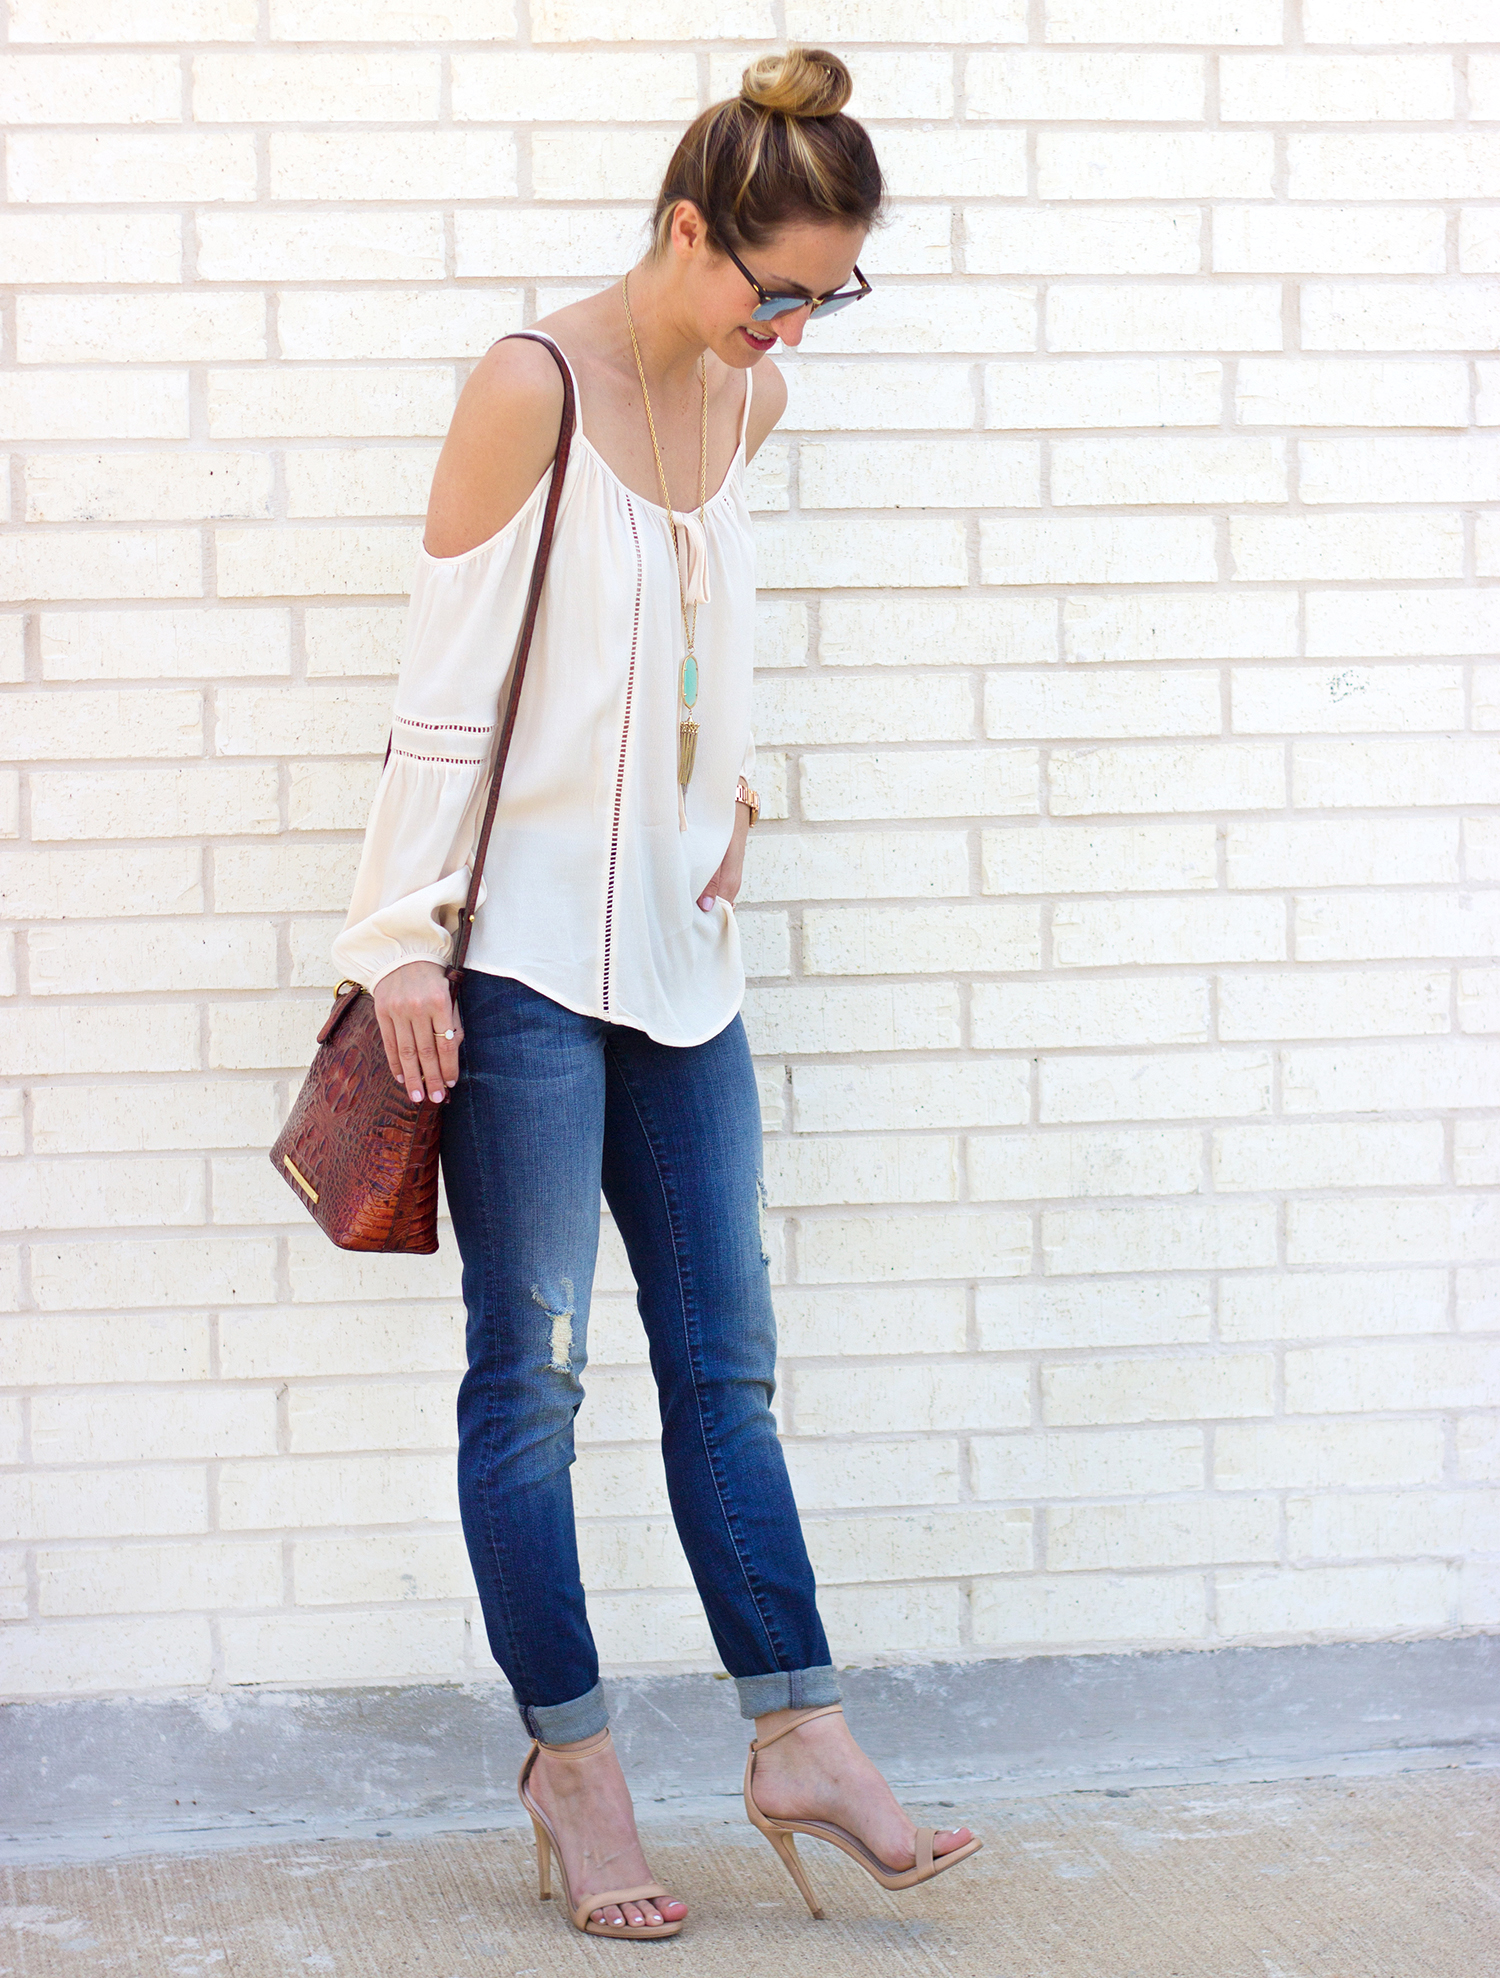 1-livvyland-blog-olivia-watson-austin-texas-fashion-blogger-kut-against-the-kloth-skinny-jeans-cream-nude-cold-shoulder-off-top-spring-nordstrom-stecy-heels-steve-madden-3